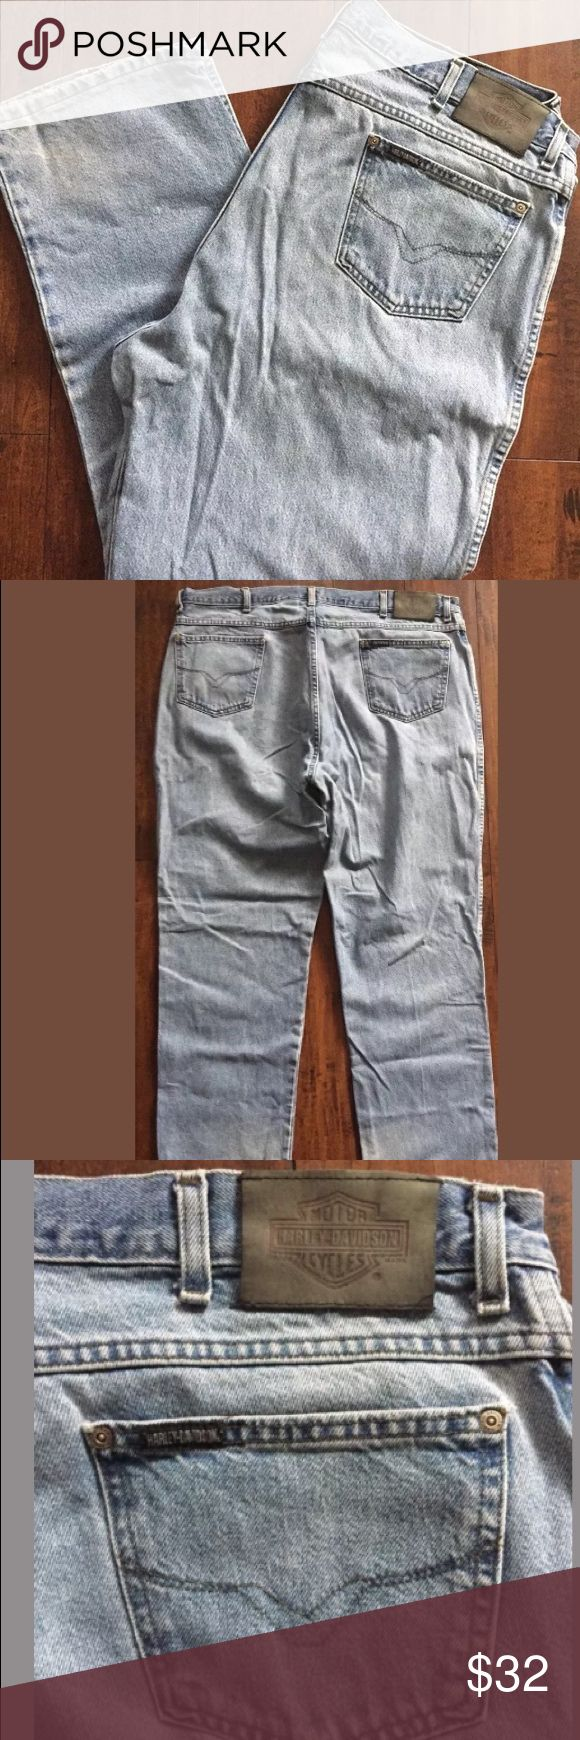 """MENS HARLEY DAVIDSON JEANS 42 x 32 DENIM JEANS MENS HARLEY DAVIDSON JEANS SIZE 42 x 32, LIGHT WASH DENIM JEANS, 100% COTTON, MADE IN USA, RELAX FIT, IN GOOD USED CONDITION  MEASUREMENTS LAYING FLAT:  WAIST 42""""  INSEAM 32""""  WILL SHIP FAST AND PRIORITY MAIL!! Harley-Davidson Jeans"""